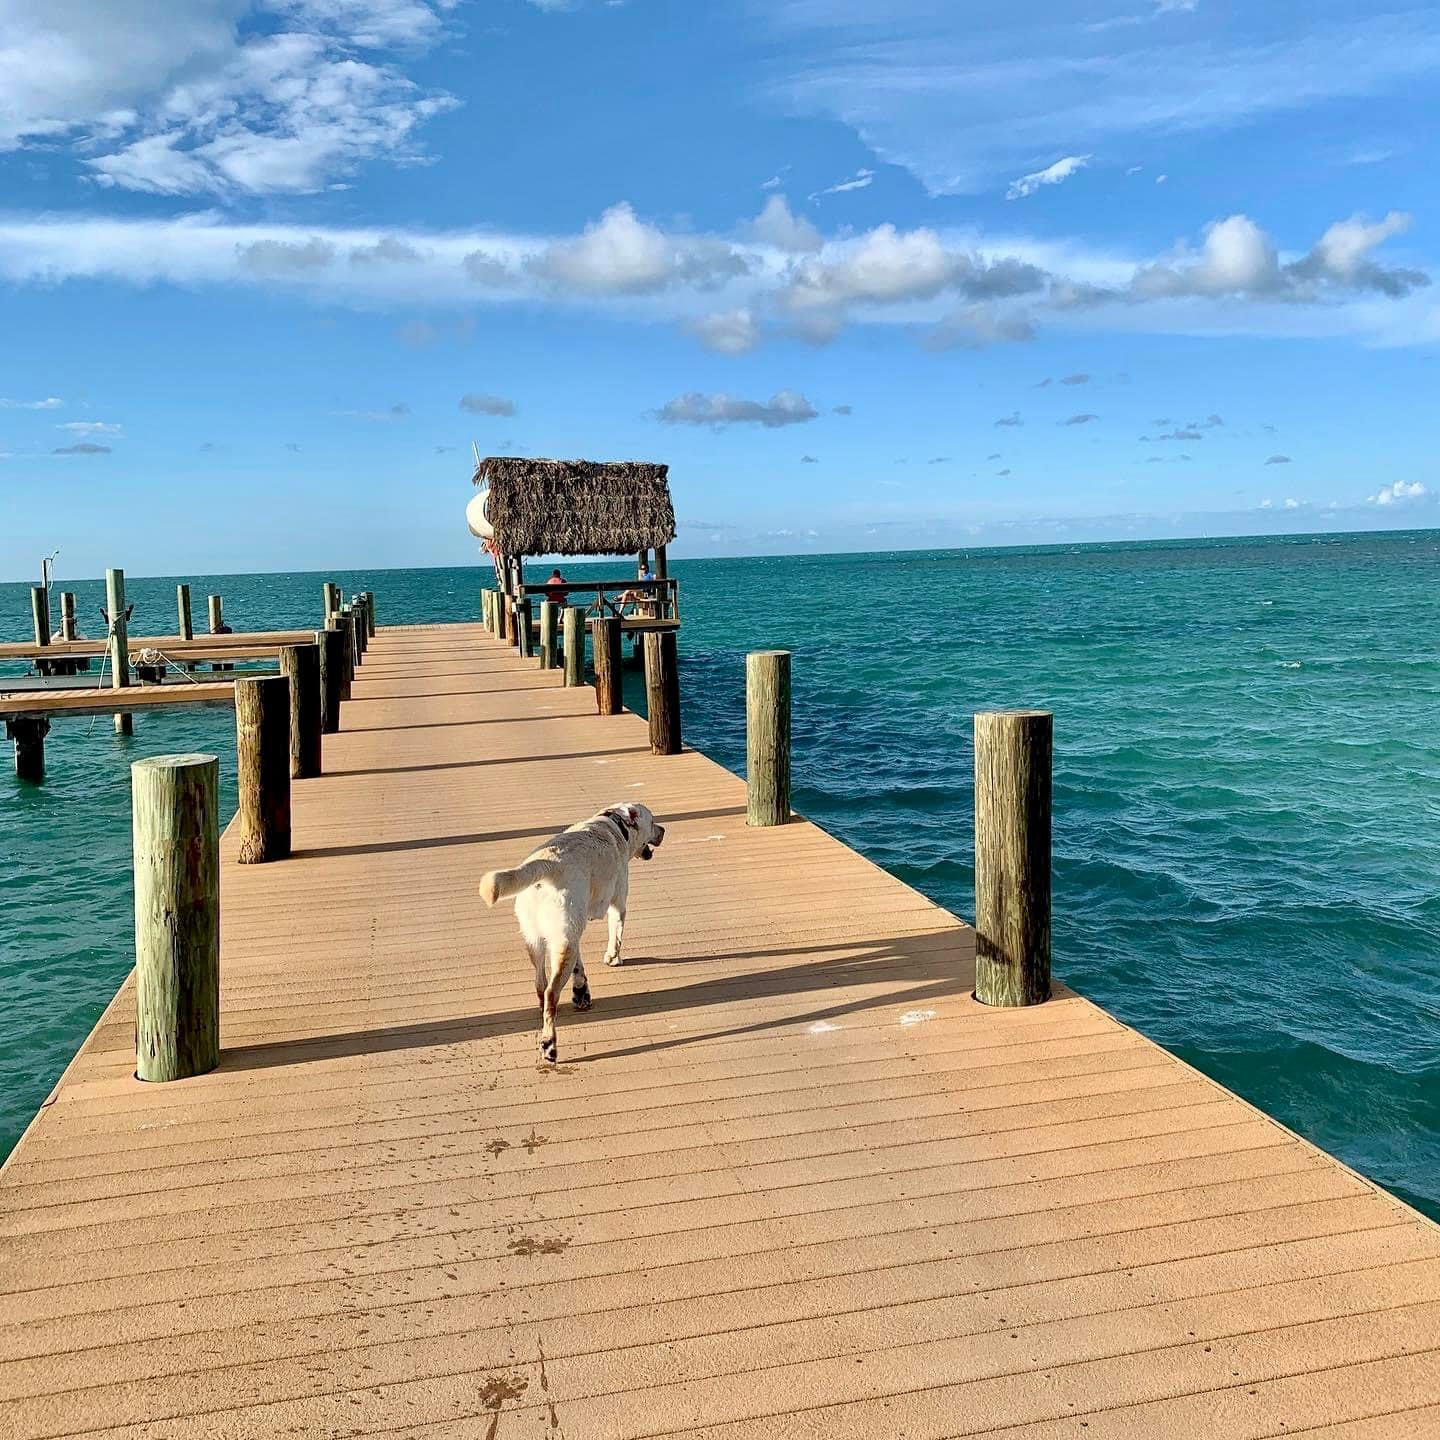 The 5-acre Pigeon Key, accessible by ferry (and pet friendly) was a camp for laborers building the 1900s-era Florida Keys Over-sea Railroad, conceived by Henry Flagler.